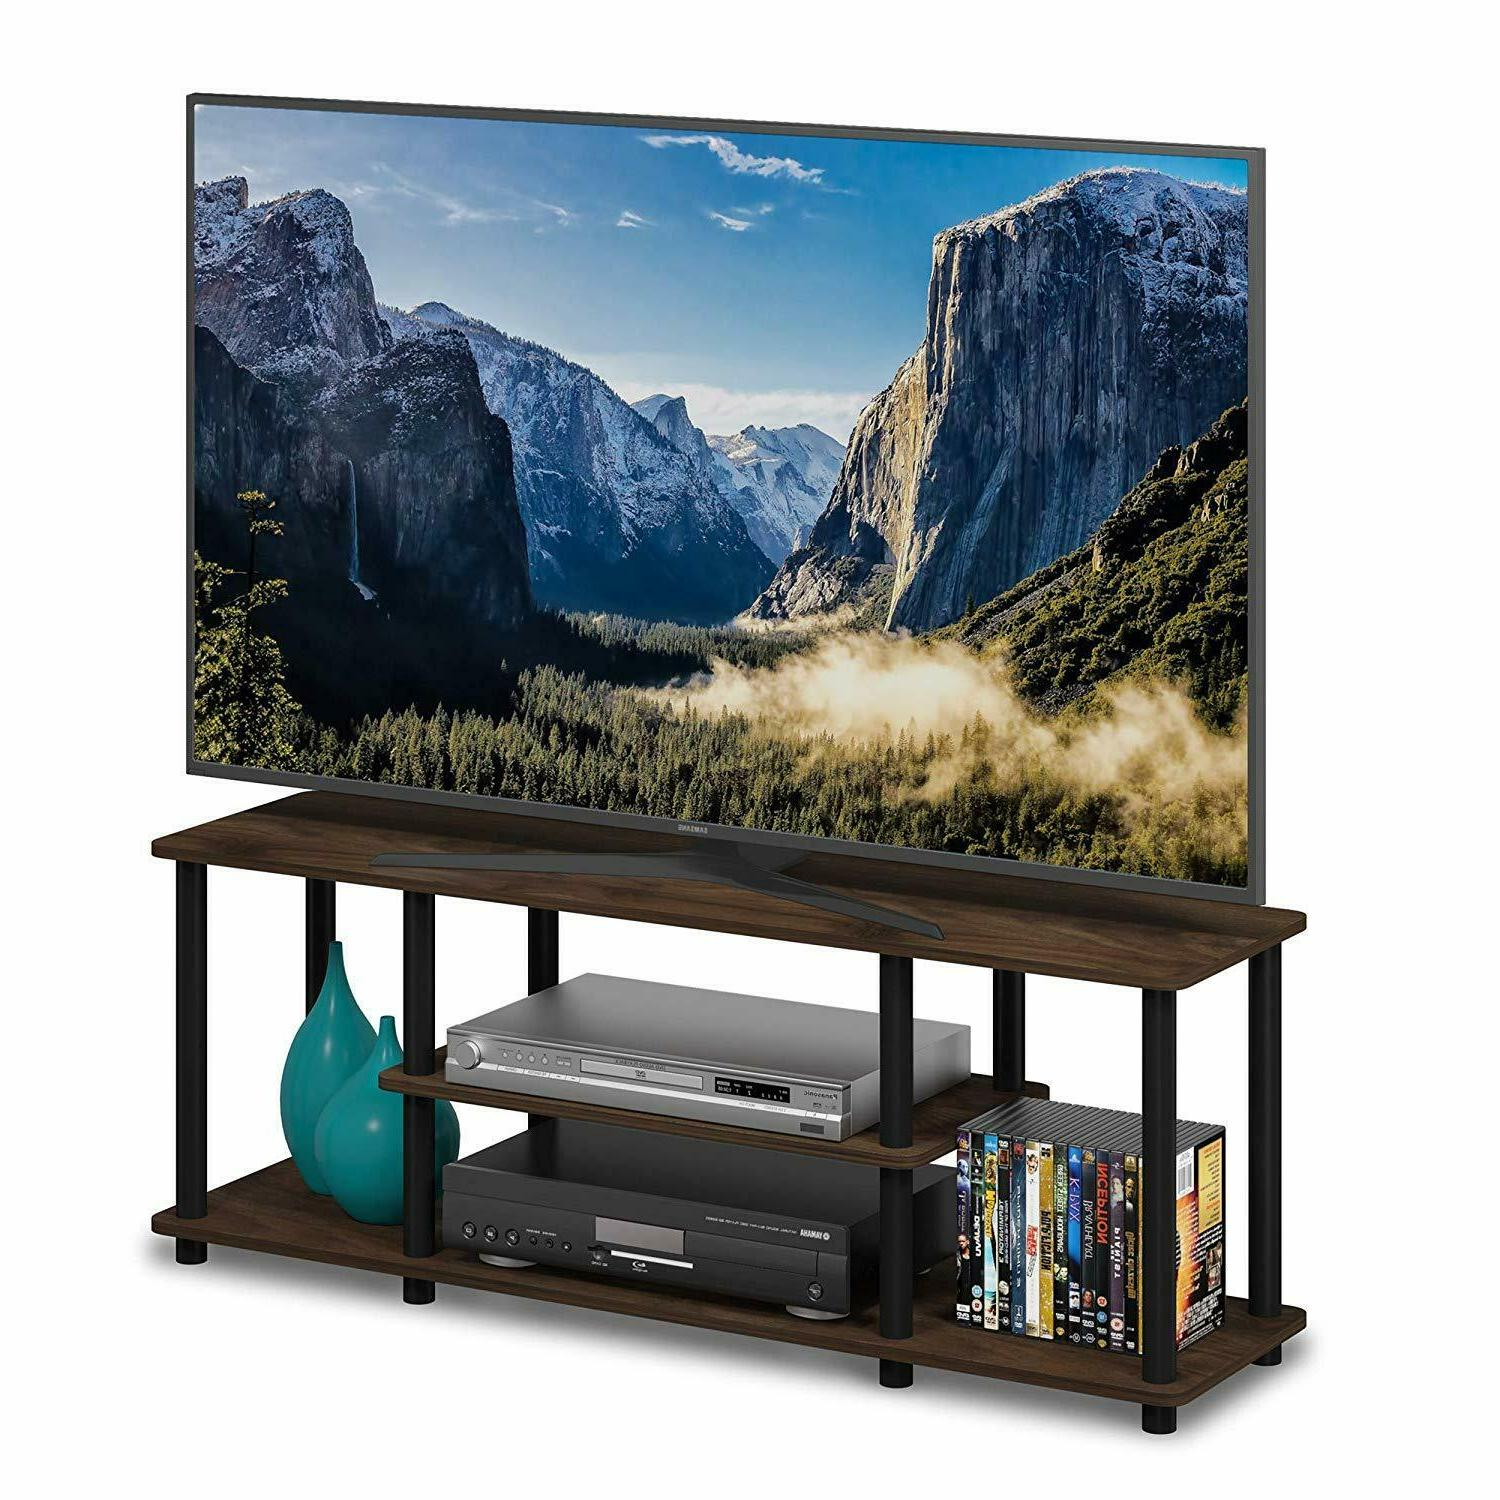 "FLAT SCREEN TV STAND HOLD Up to 55"" or 60 Lbs LARGE Entertai"